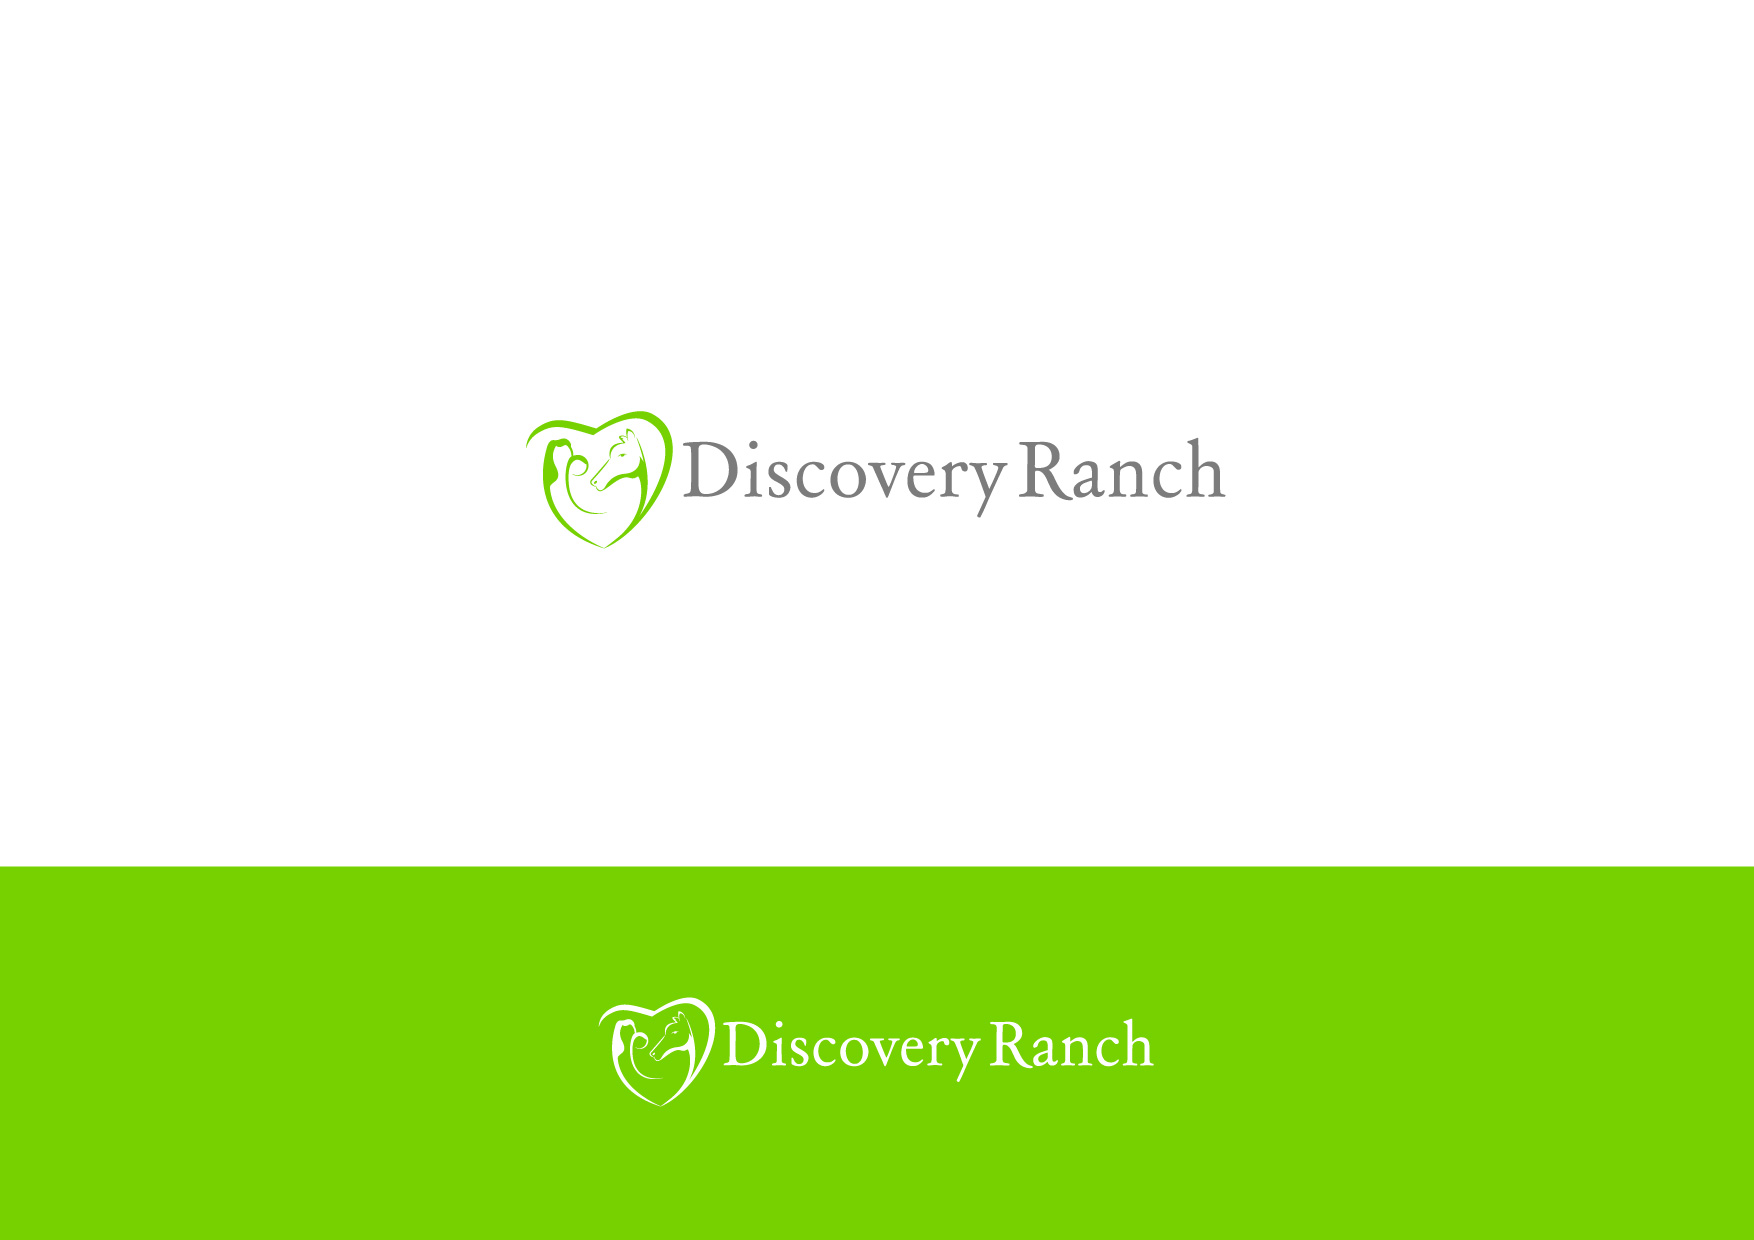 Logo Design by Osi Indra - Entry No. 22 in the Logo Design Contest Creative Logo Design for Discovery Ranch.